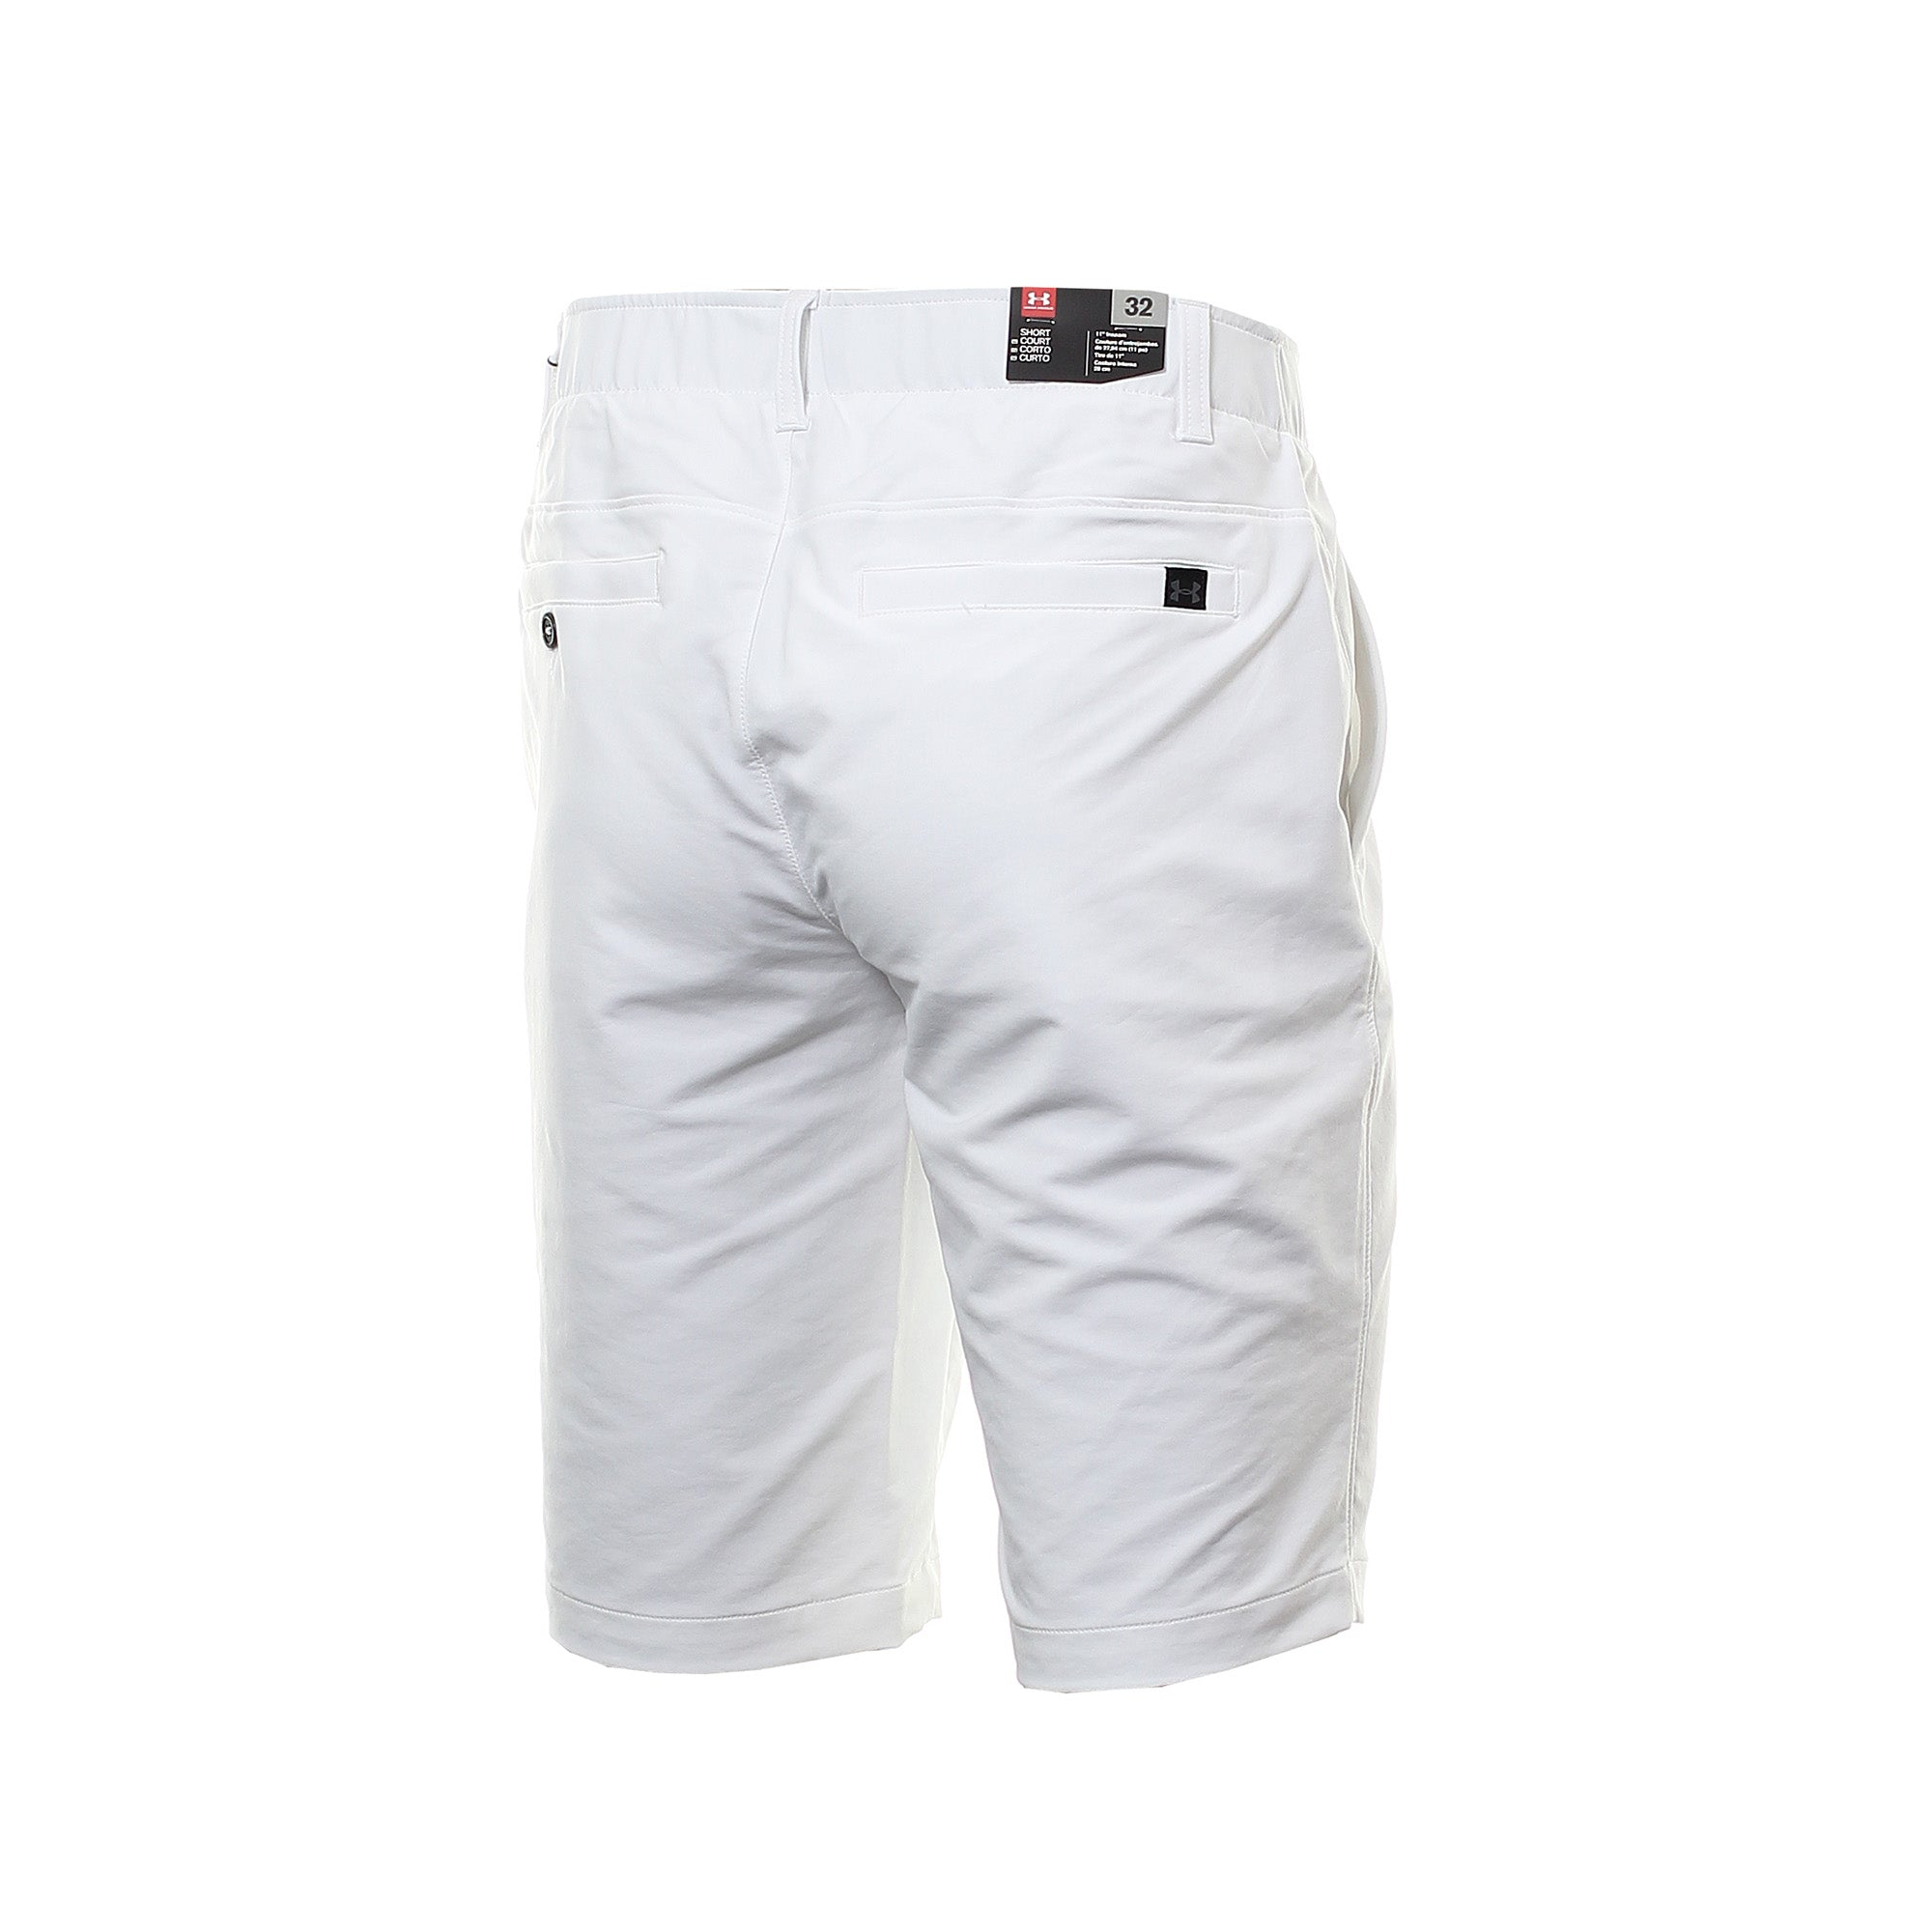 Under Armour Golf Performance Tapered Short 1342240